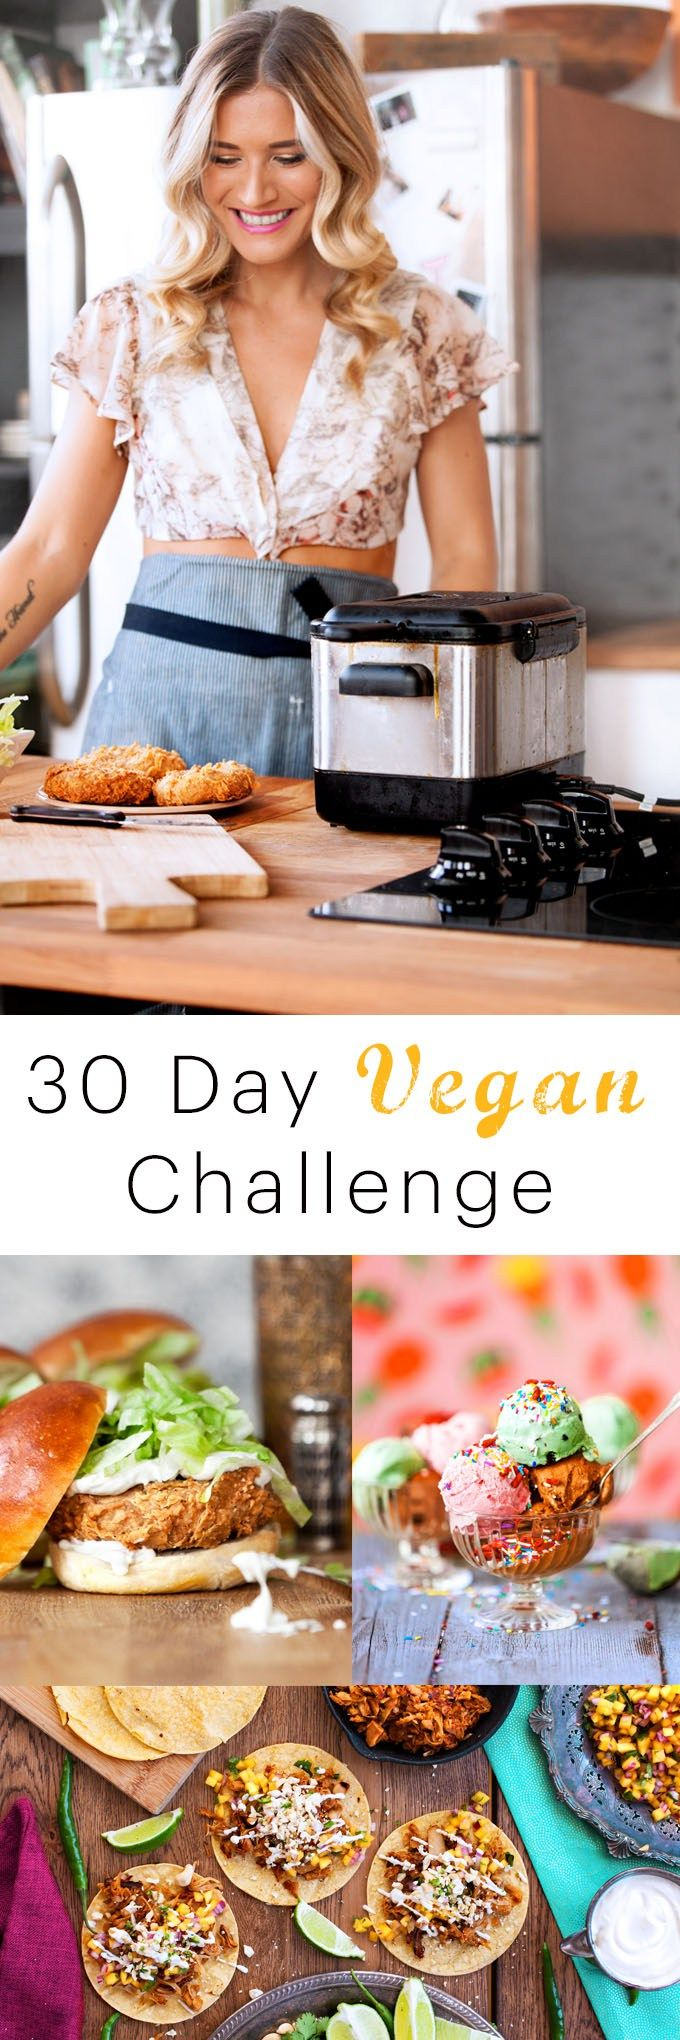 If you aren't a vegan, or even a vegetarian, it's important to give your body a break from meat and dairy every so often. The 30 day vegan challenge is a great way to find new ways to incorporate more vegetables and vegan protein into your diet, and will get you back into the kitchen, really thinking about what you are putting into your body.  30 days vegan challenge